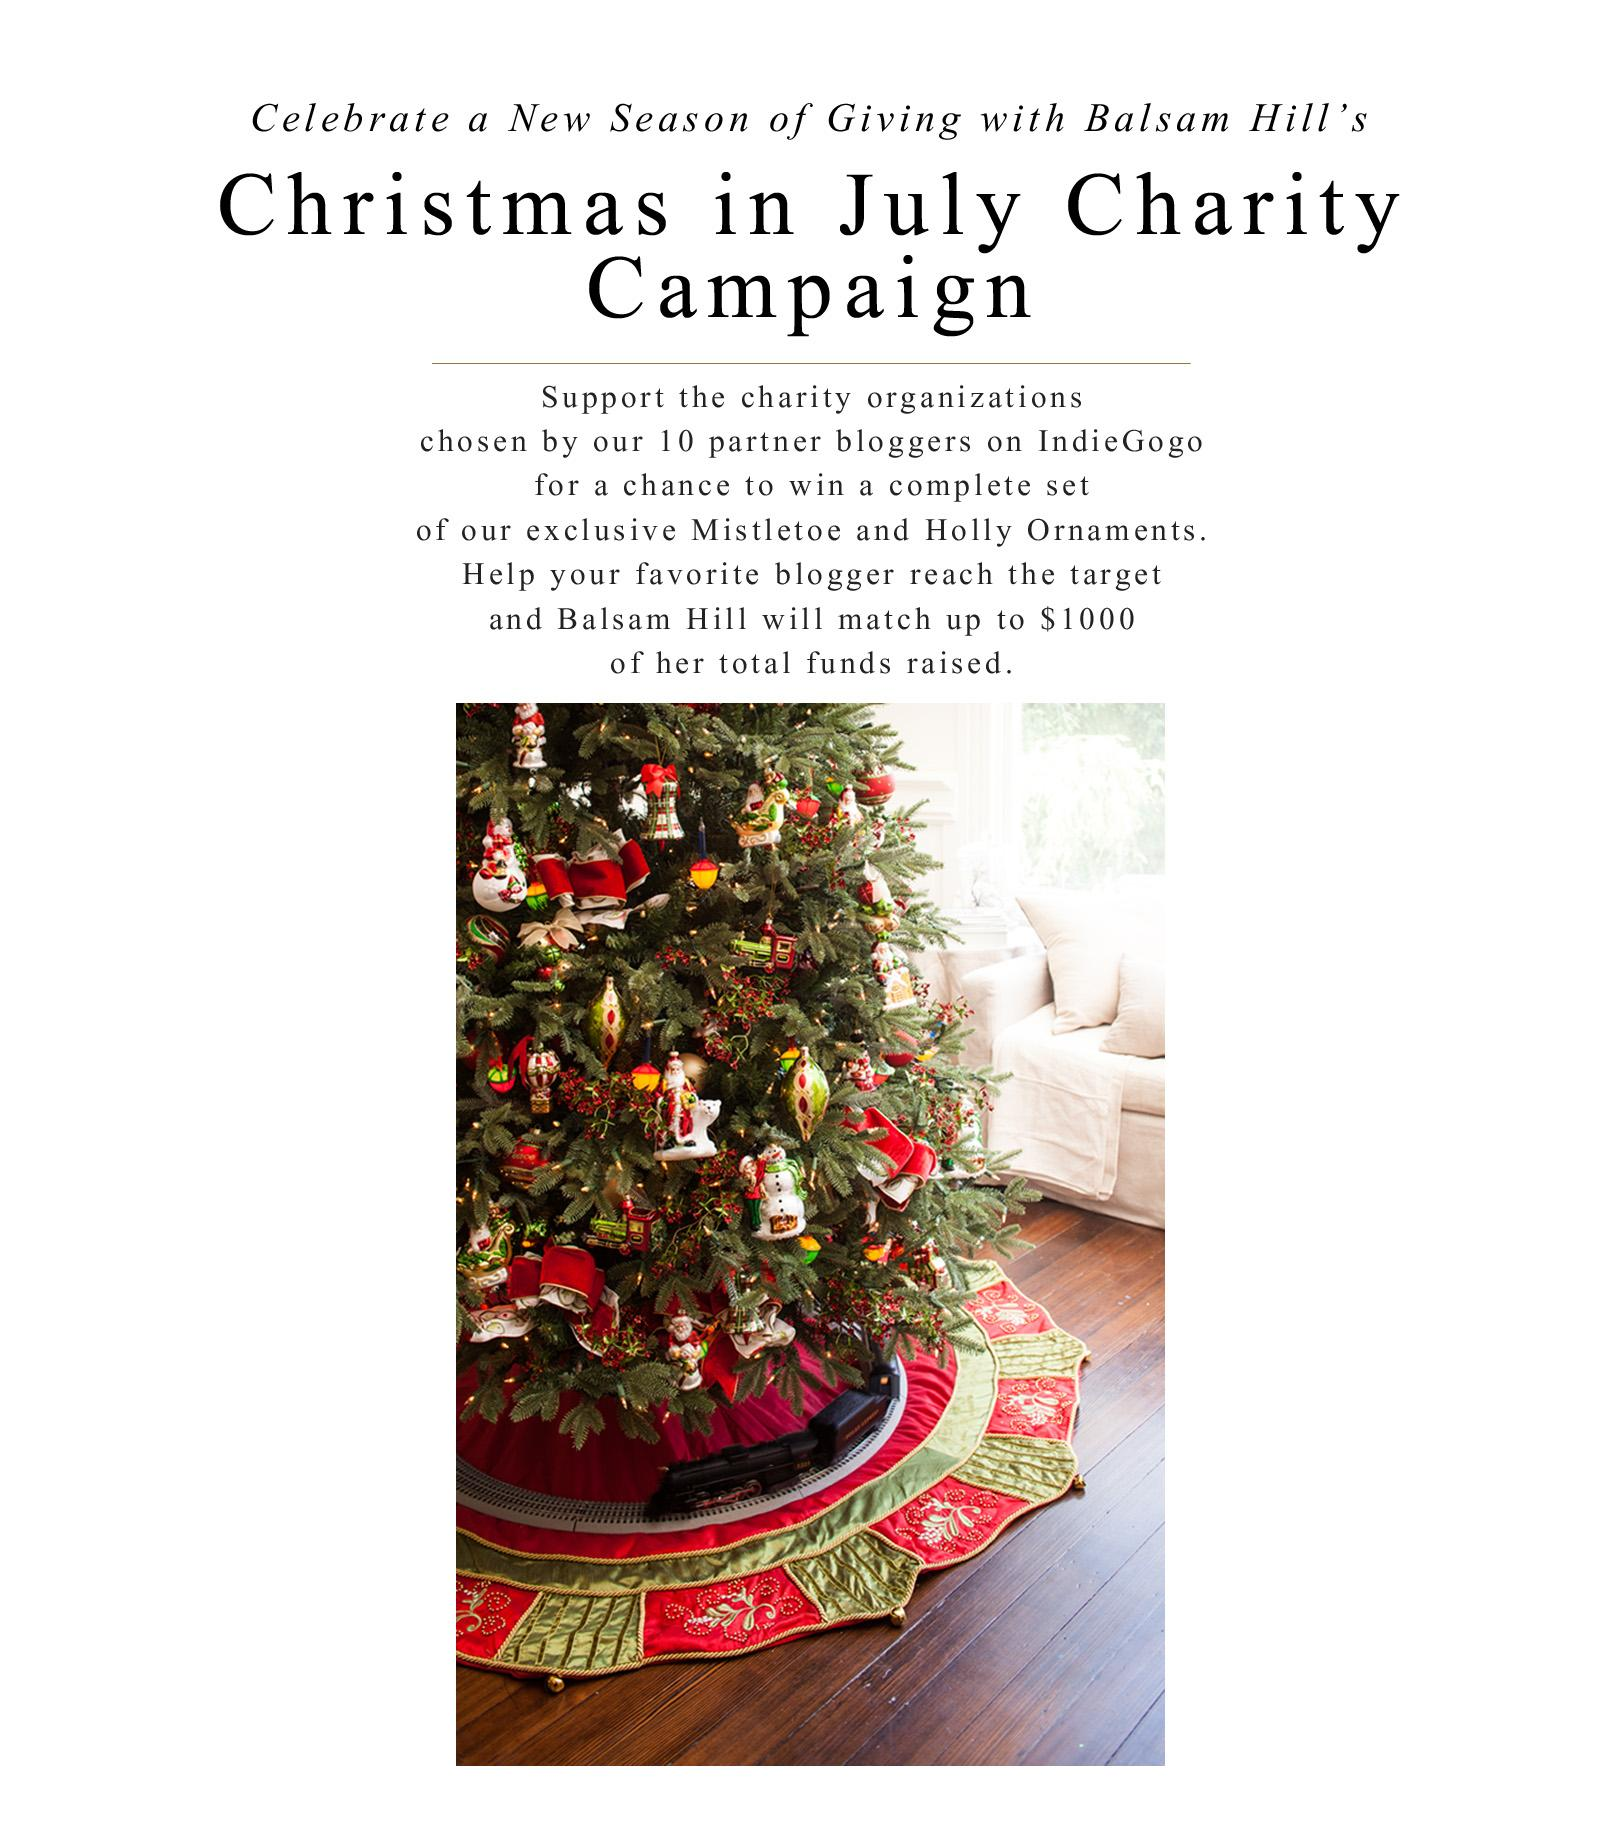 Balsam Hill is celebrating Christmas in July by helping 10 bloggers raise funds for charity all in the spirit of giving.